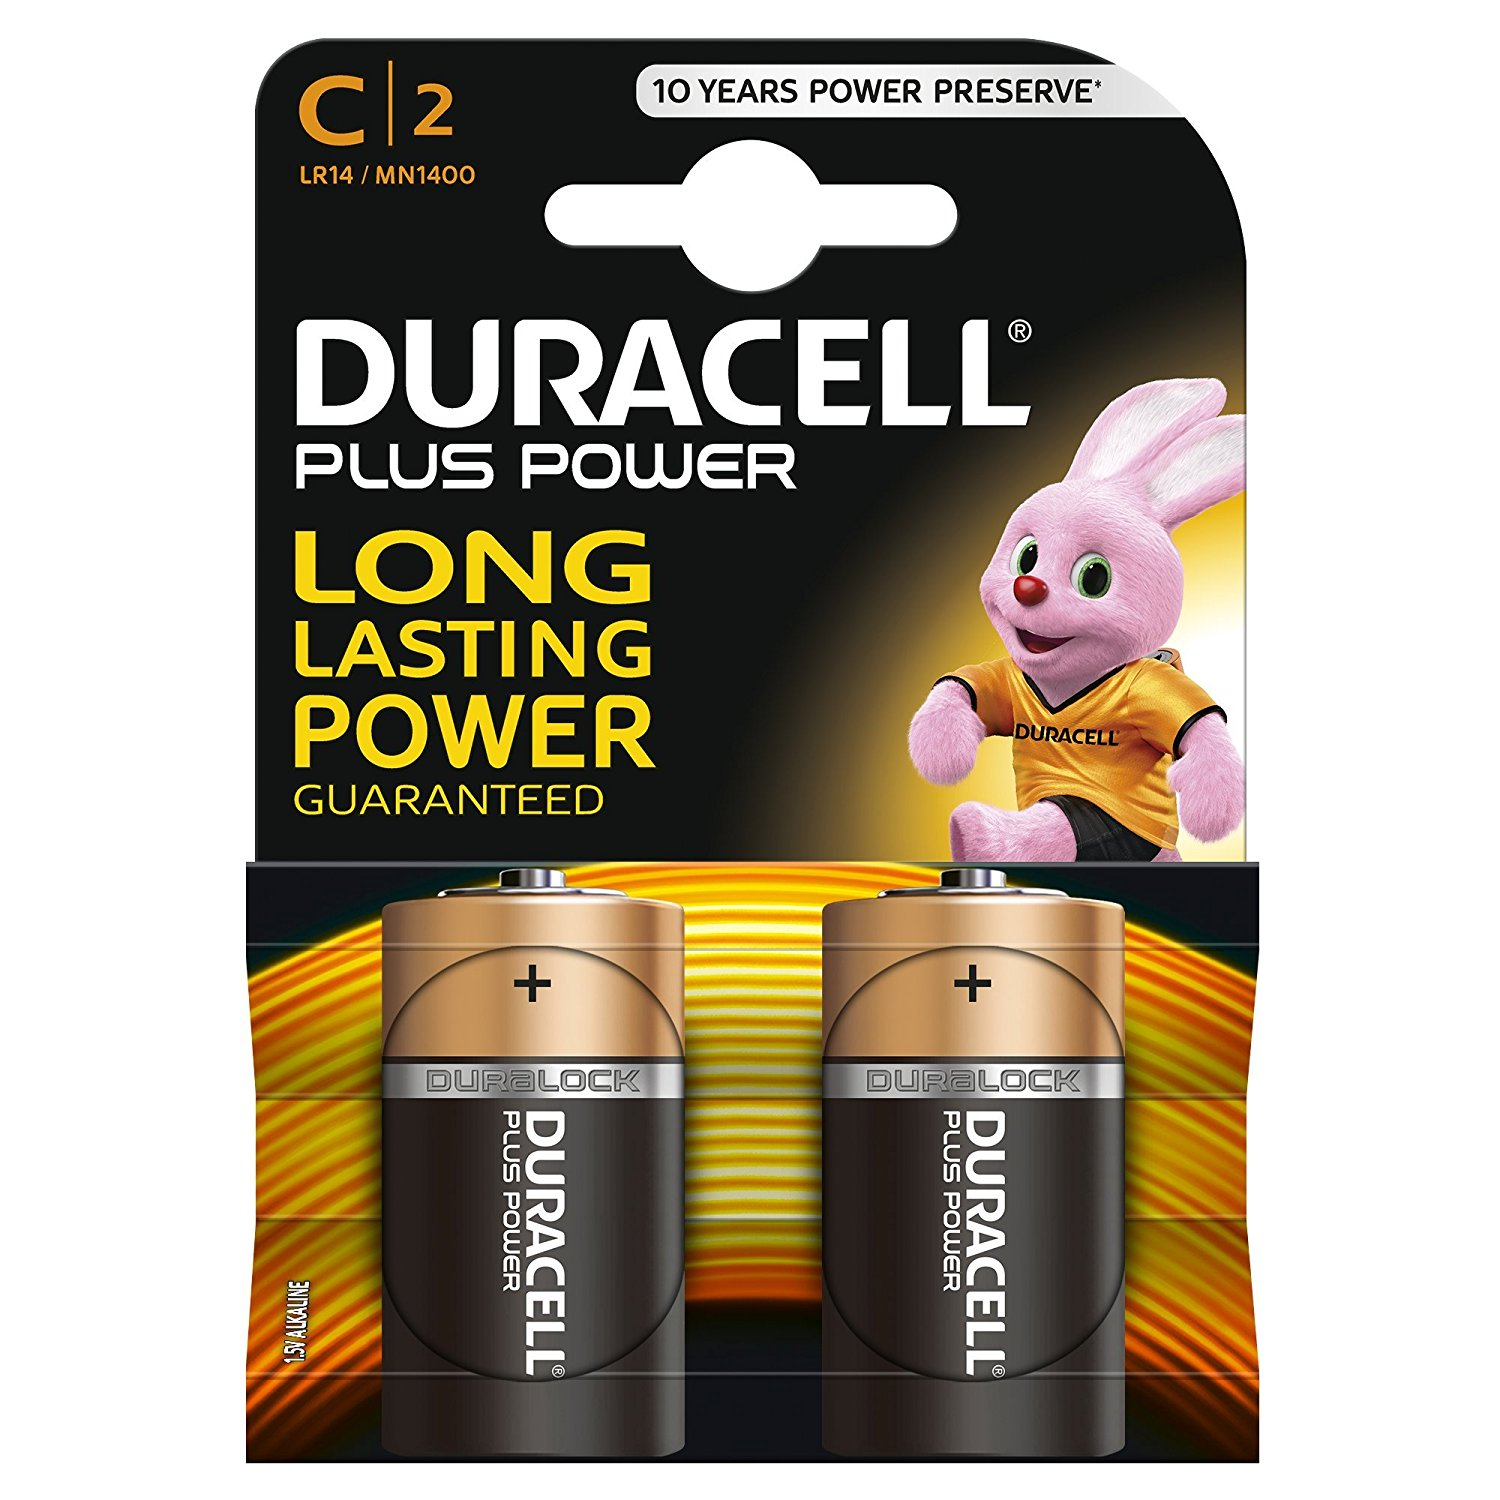 C Duracell Batteries PK2